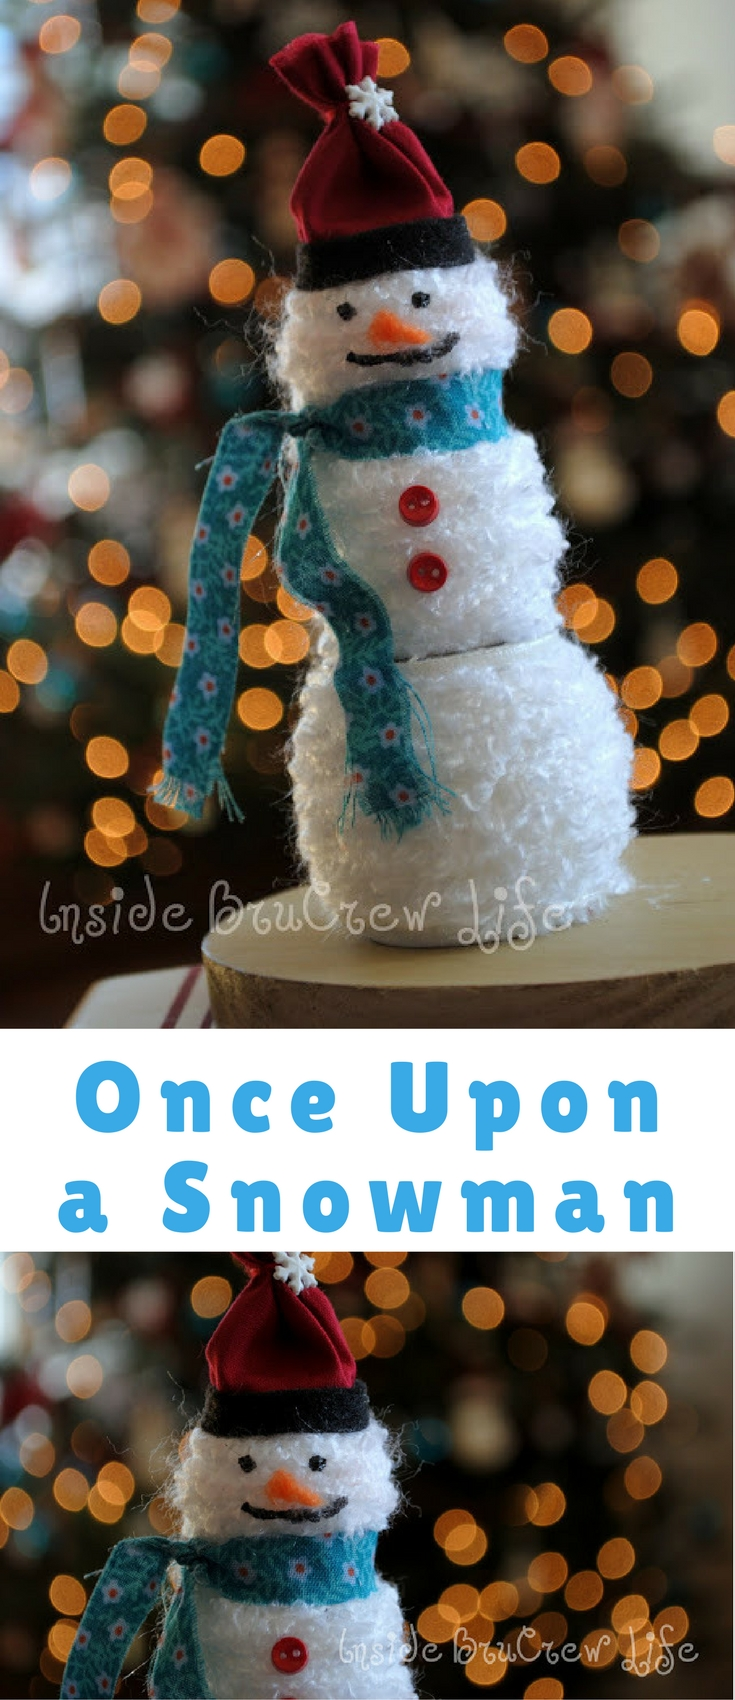 Time to gather your supplies because I am going to share my snowman vision with you.